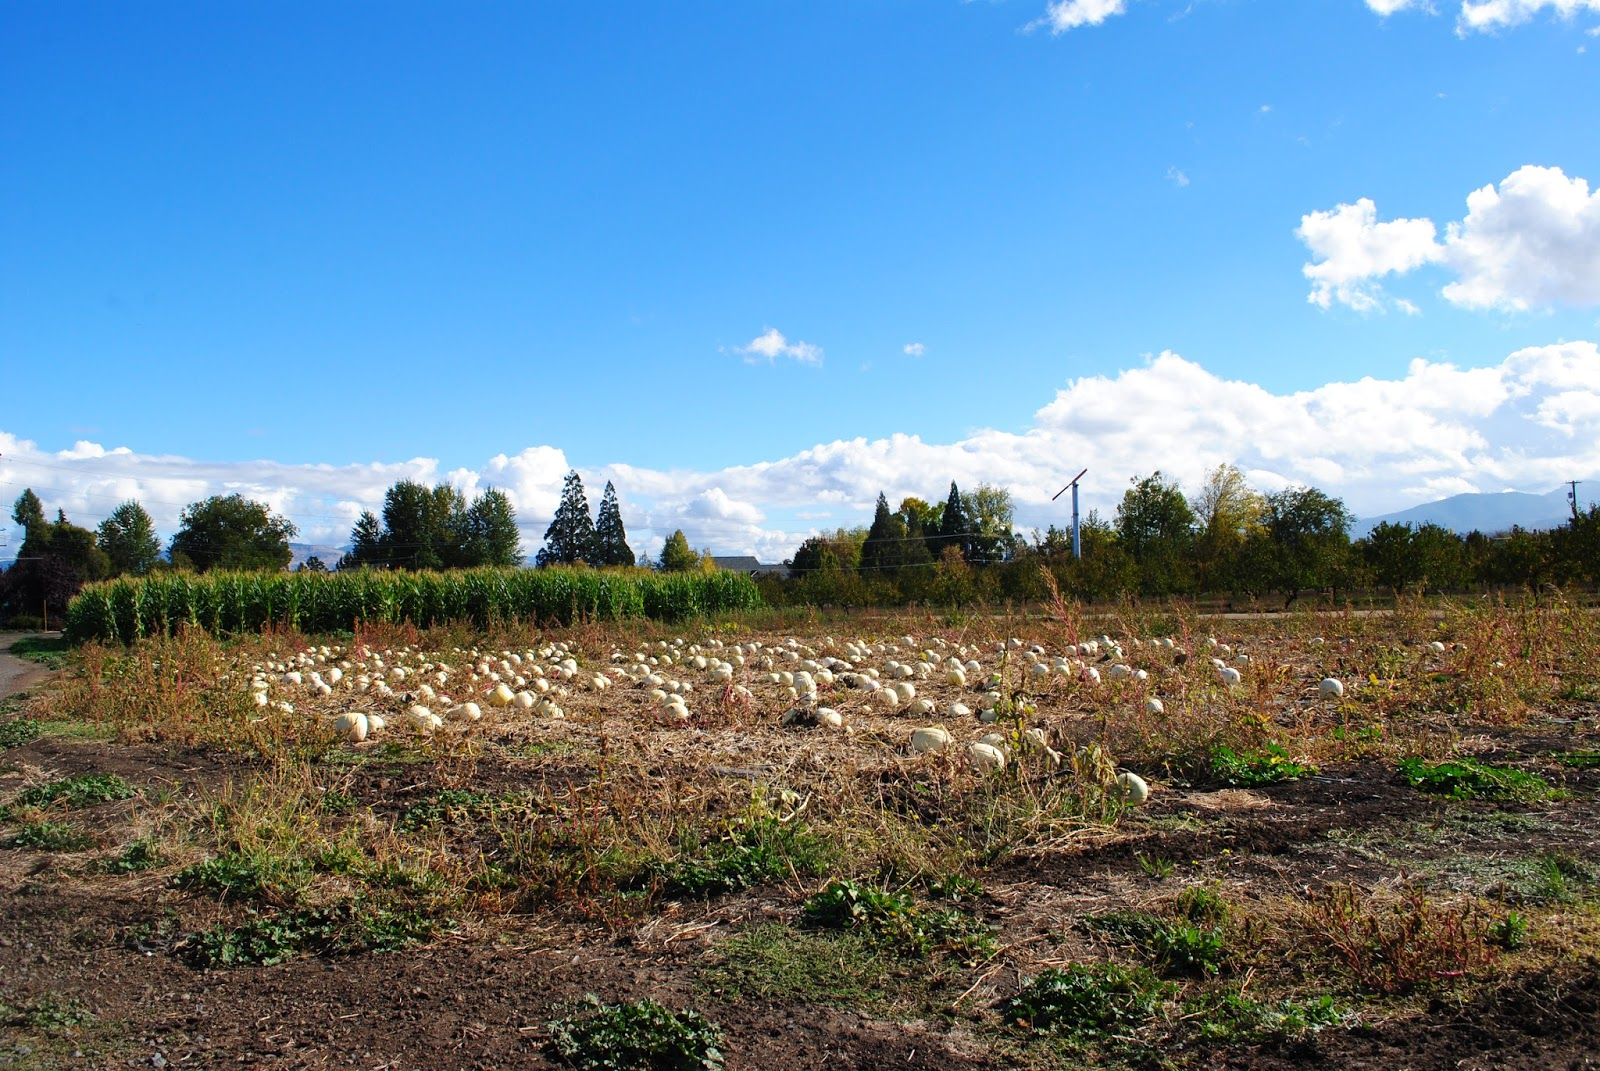 WHITES COUNTRY FARM - HARVEST FESTIVAL - What to do in Southern Oregon - Medford - Kids - Pumpkin Patch - Fall